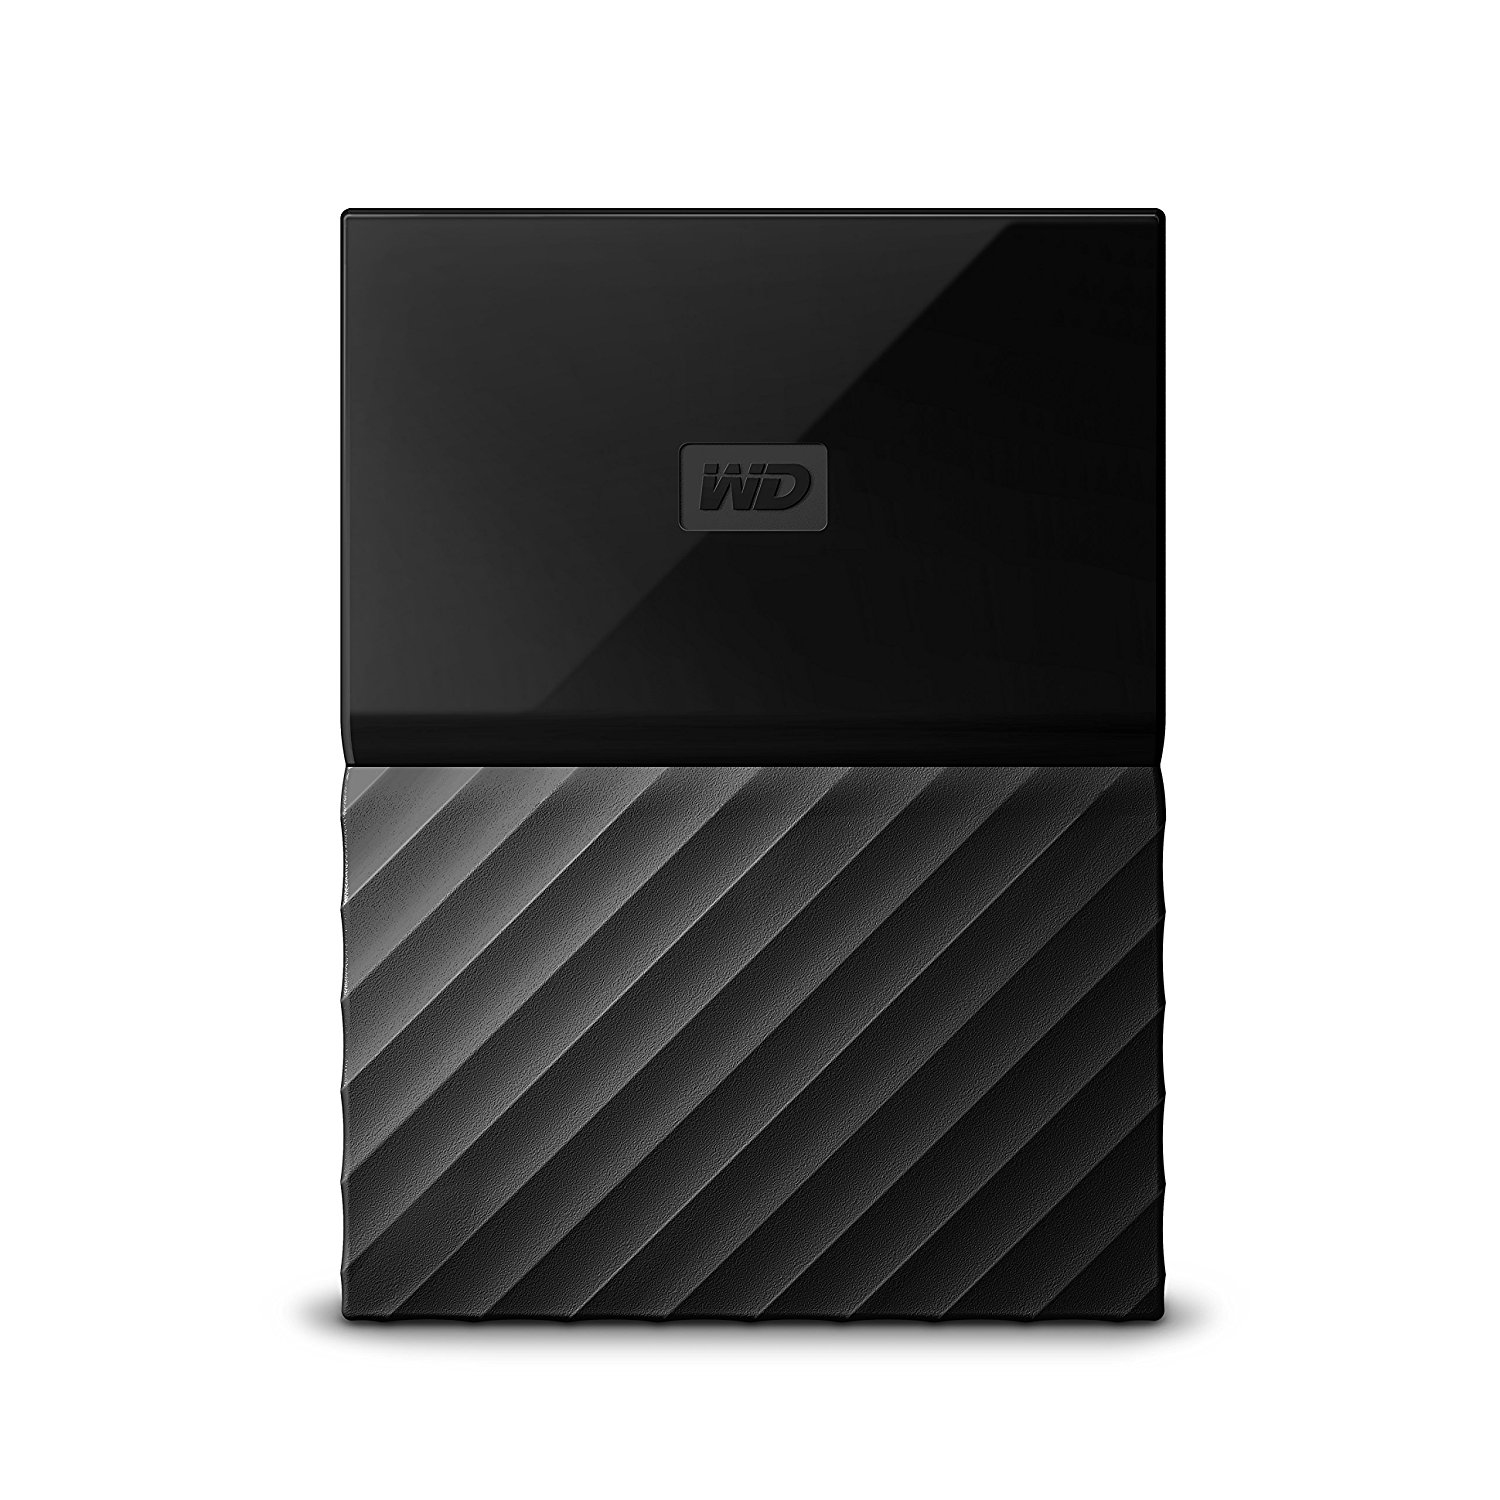 Western Digital My Passport externe harde schijf 2000 GB Zwart